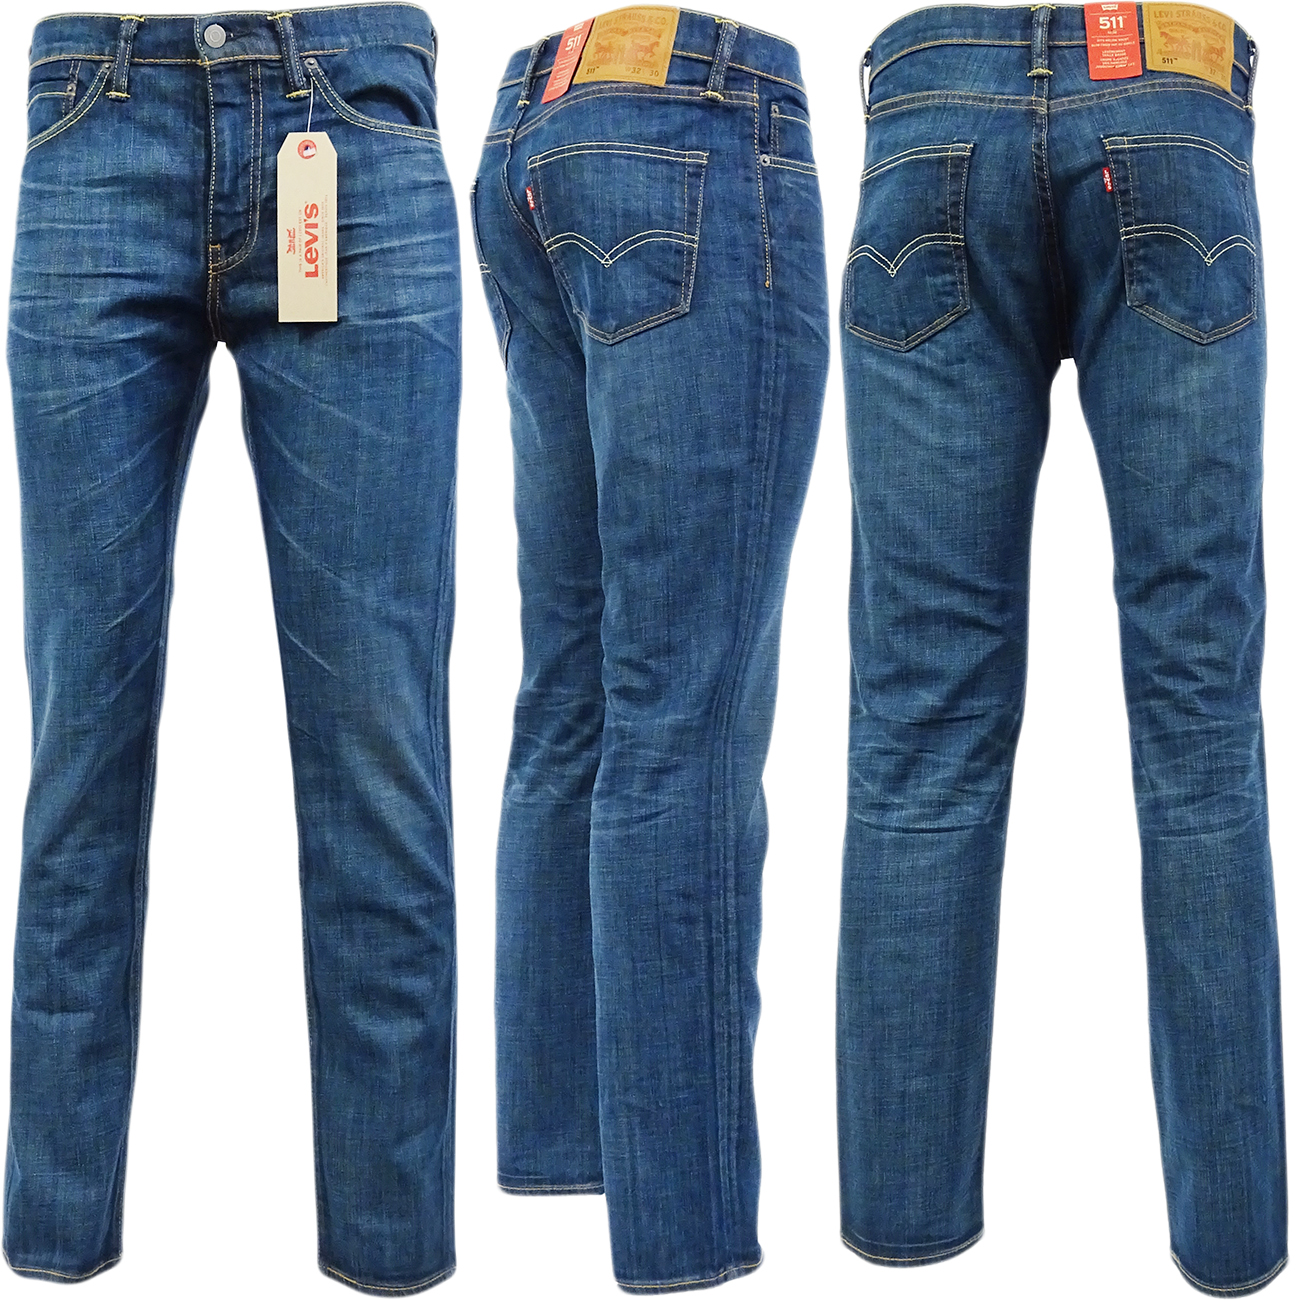 mens levis jean 511 slim fit 39 explorer 39 denim pant ebay. Black Bedroom Furniture Sets. Home Design Ideas